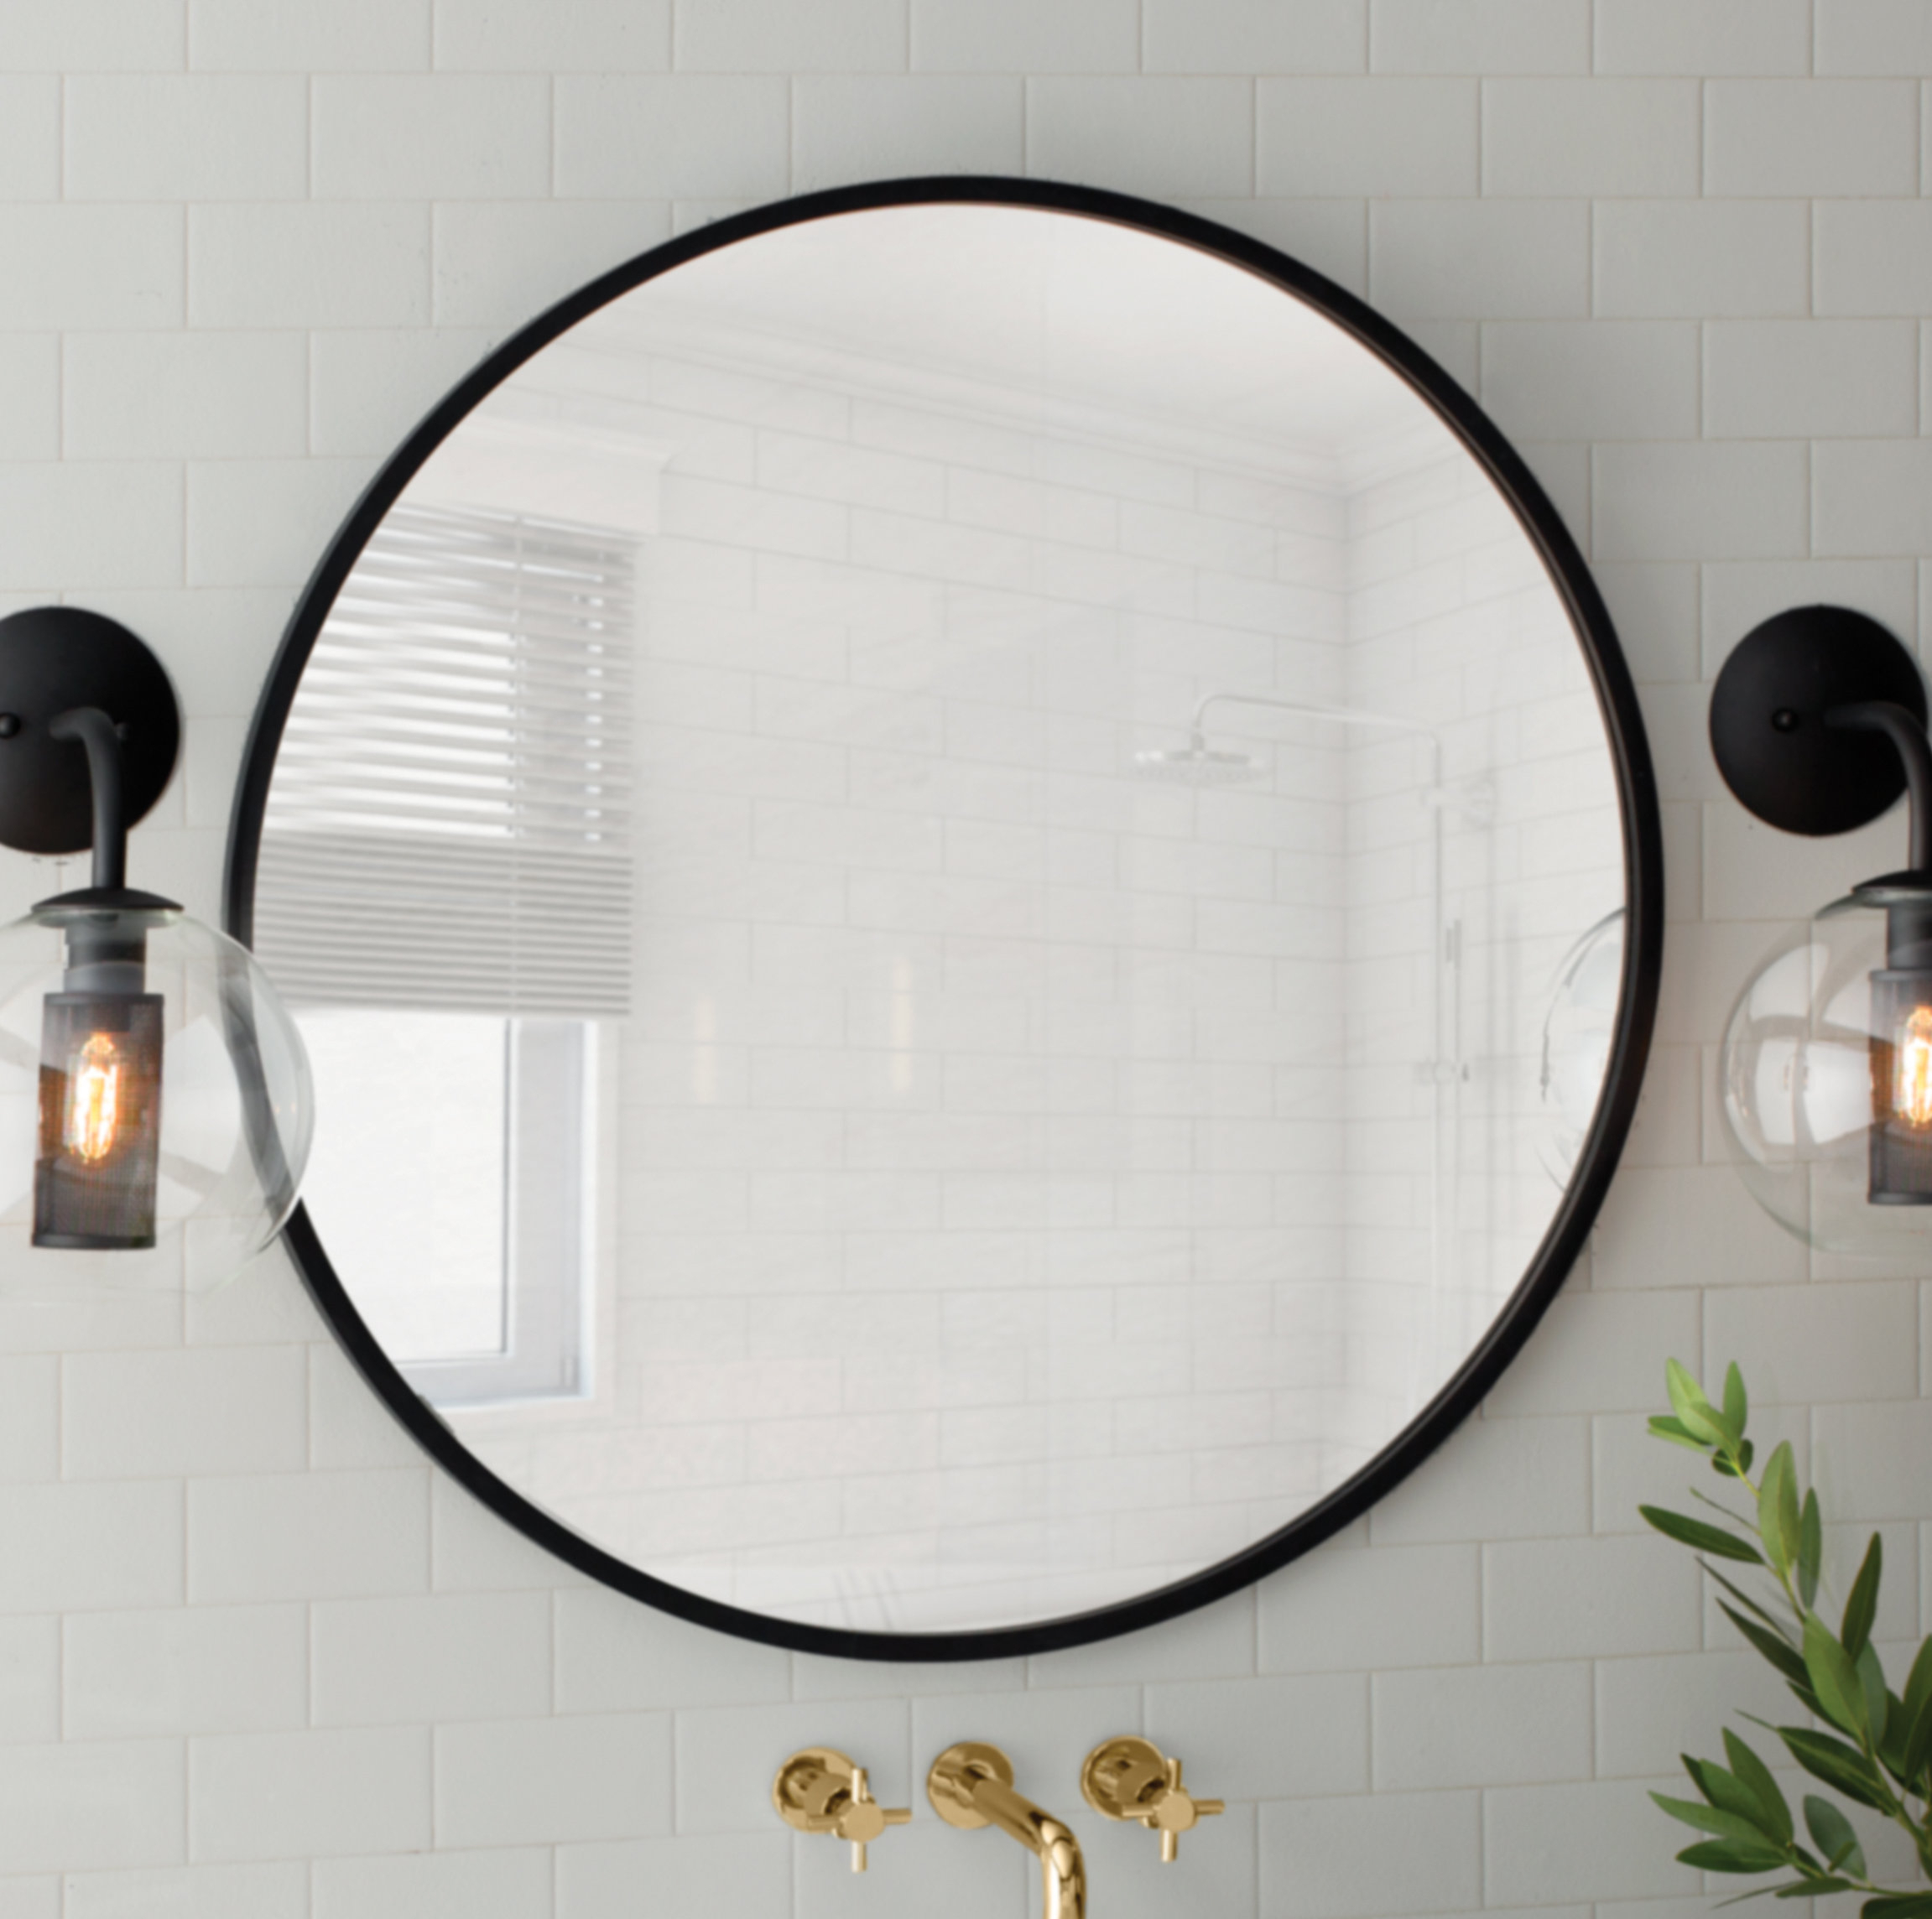 Umbra Hub Modern And Contemporary Accent Mirror With Regard To Menachem Modern & Contemporary Accent Mirrors (Image 28 of 30)